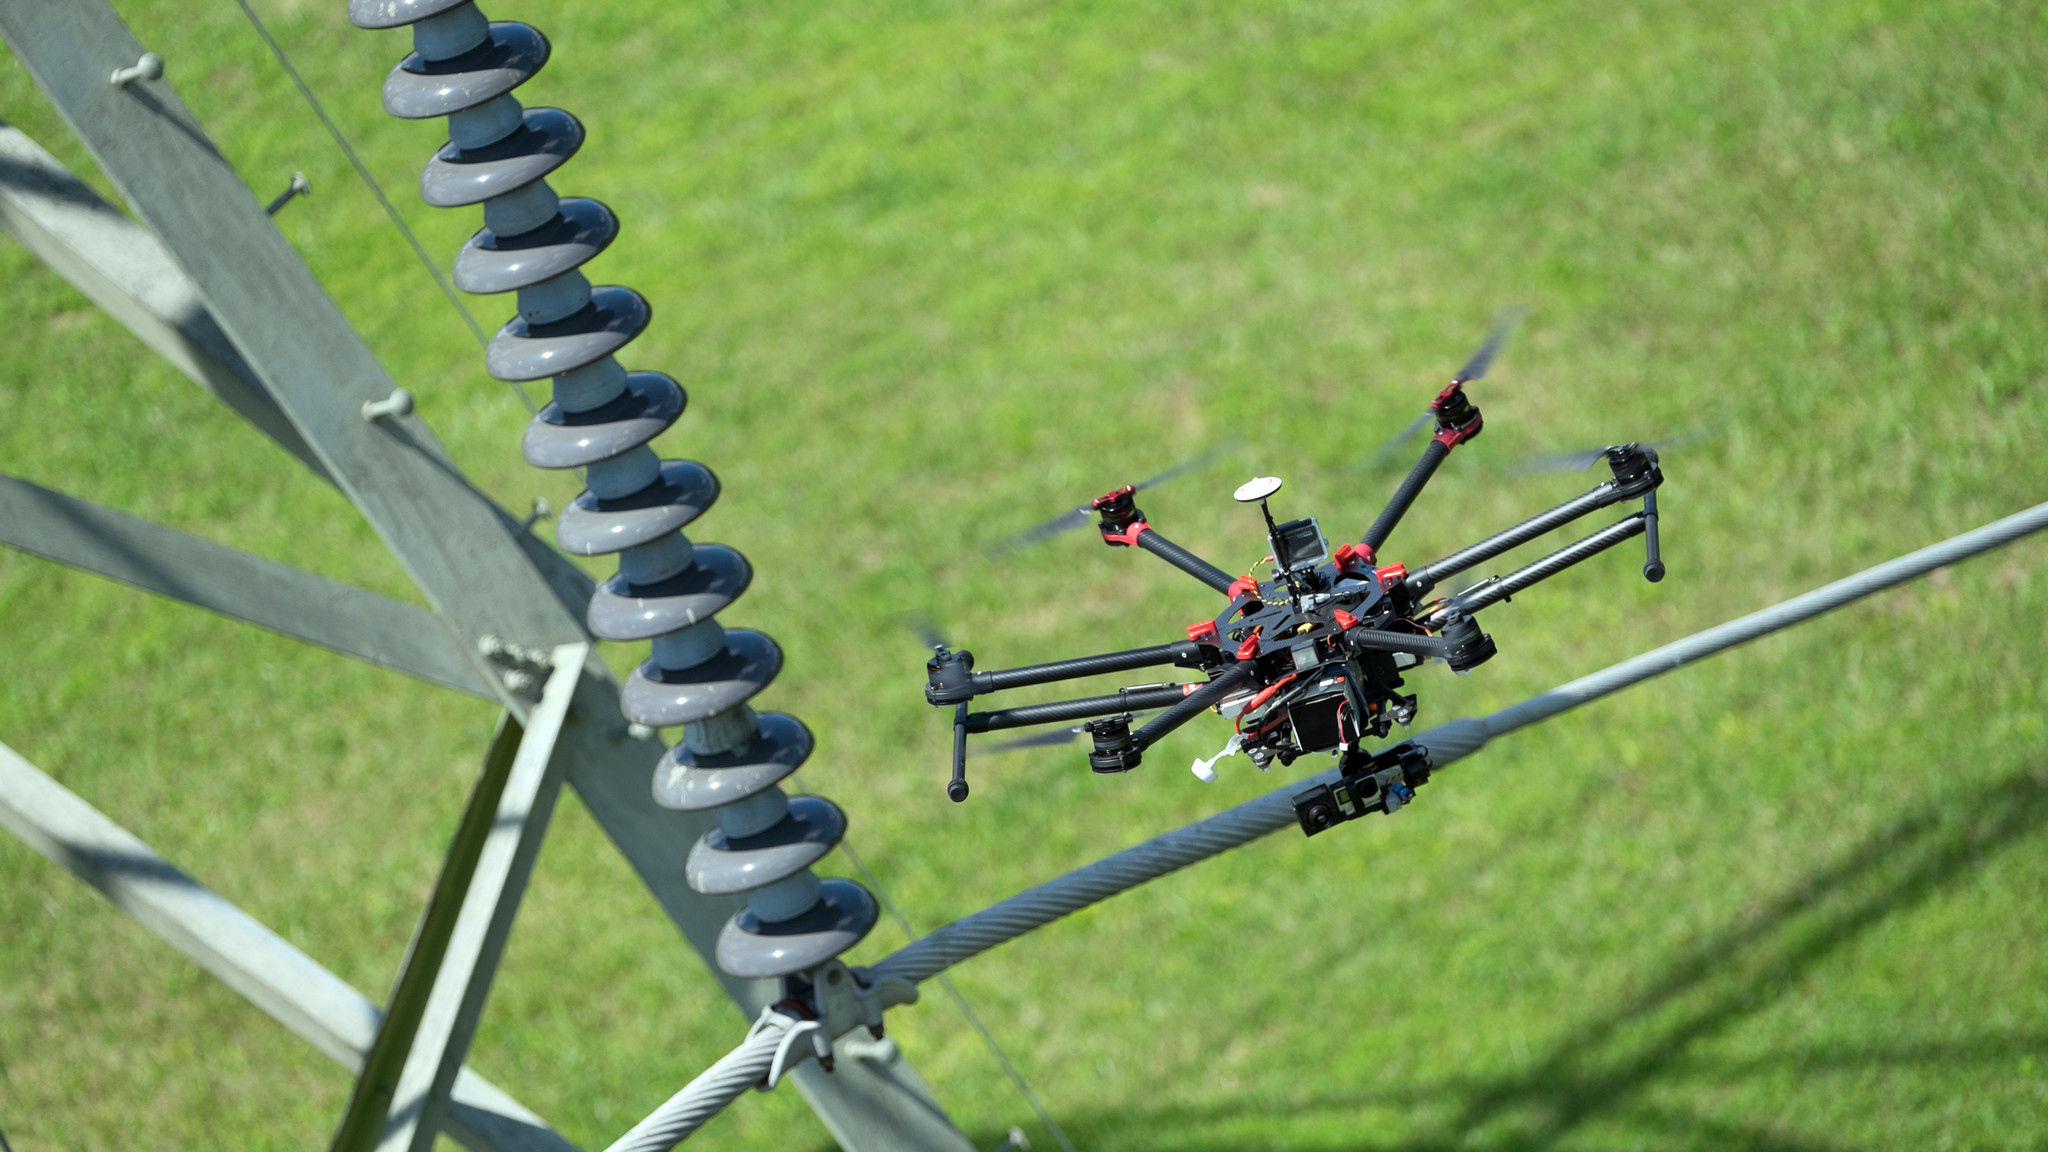 drones working energy companies survey power lines